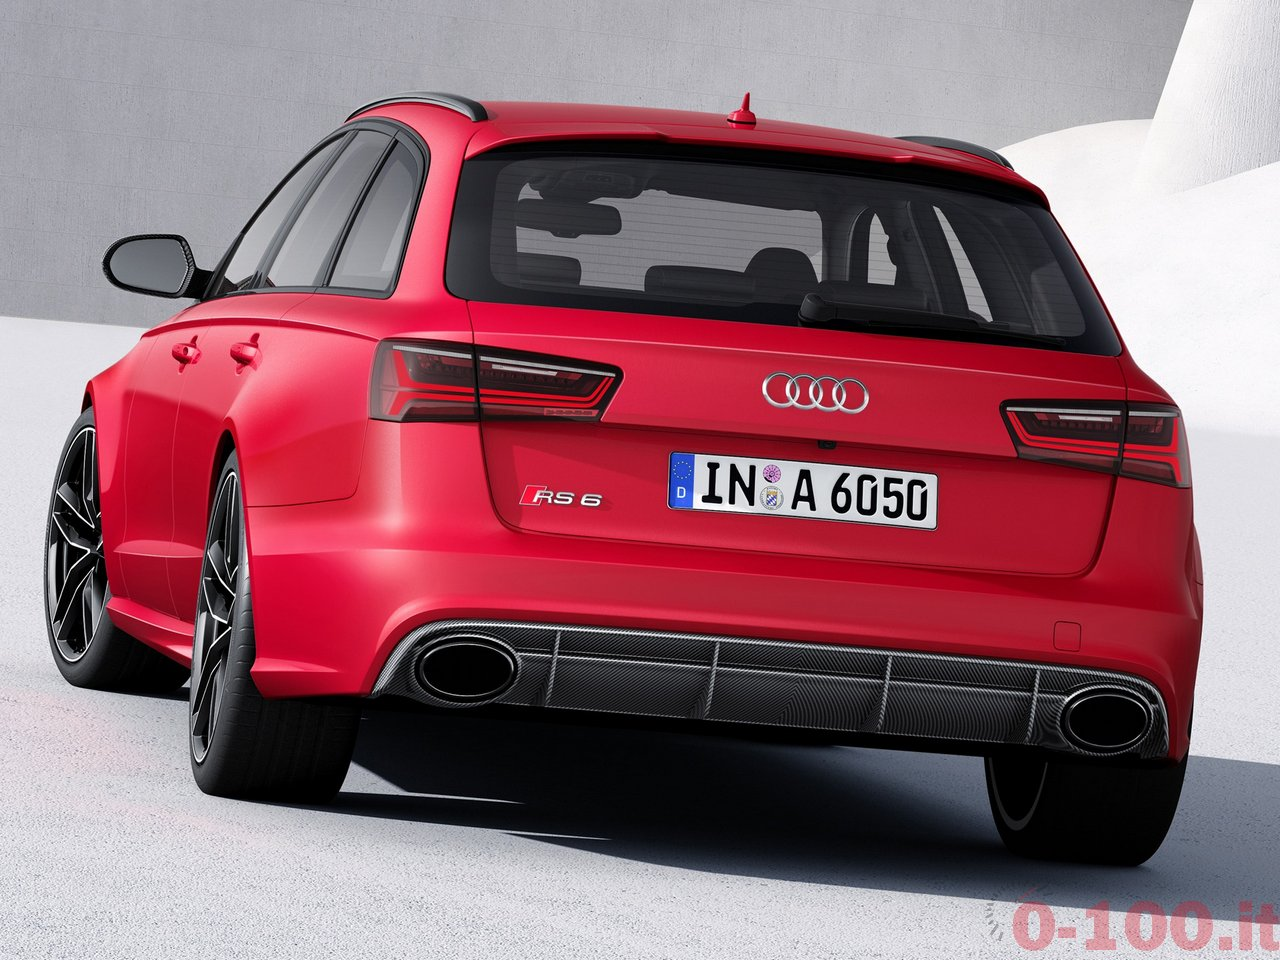 audi s6 e rs6 i prezzi sul mercato italiano 0 100 motori orologi lifestyle. Black Bedroom Furniture Sets. Home Design Ideas